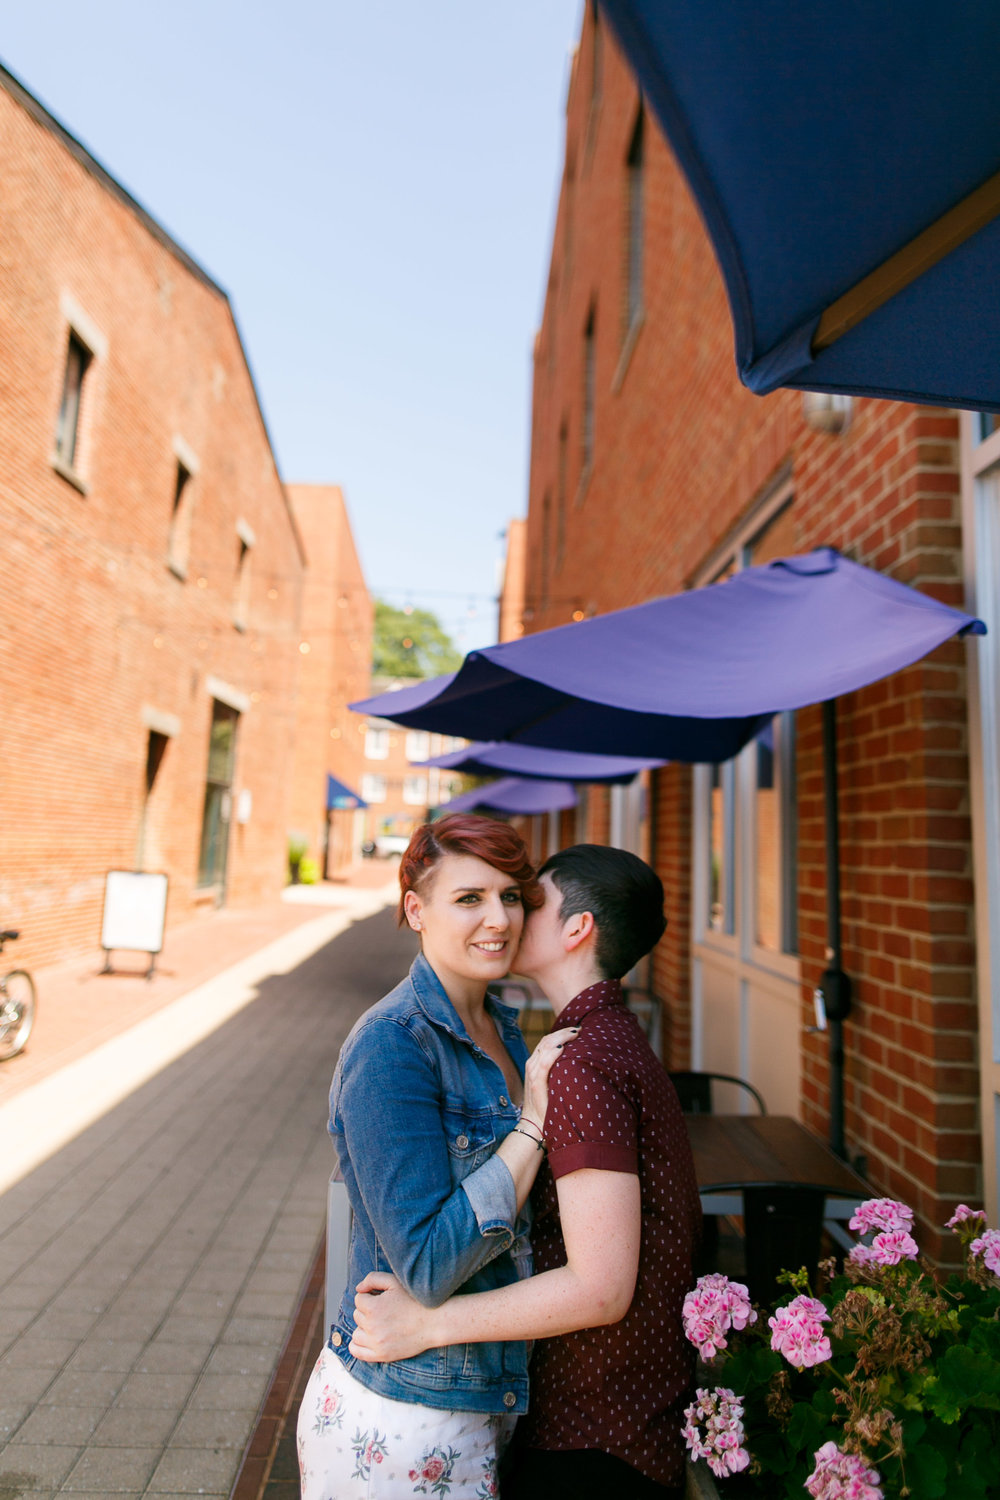 LGBTQ Baltimore Engagement Session with lesbian photographer Swiger Photography11.jpg